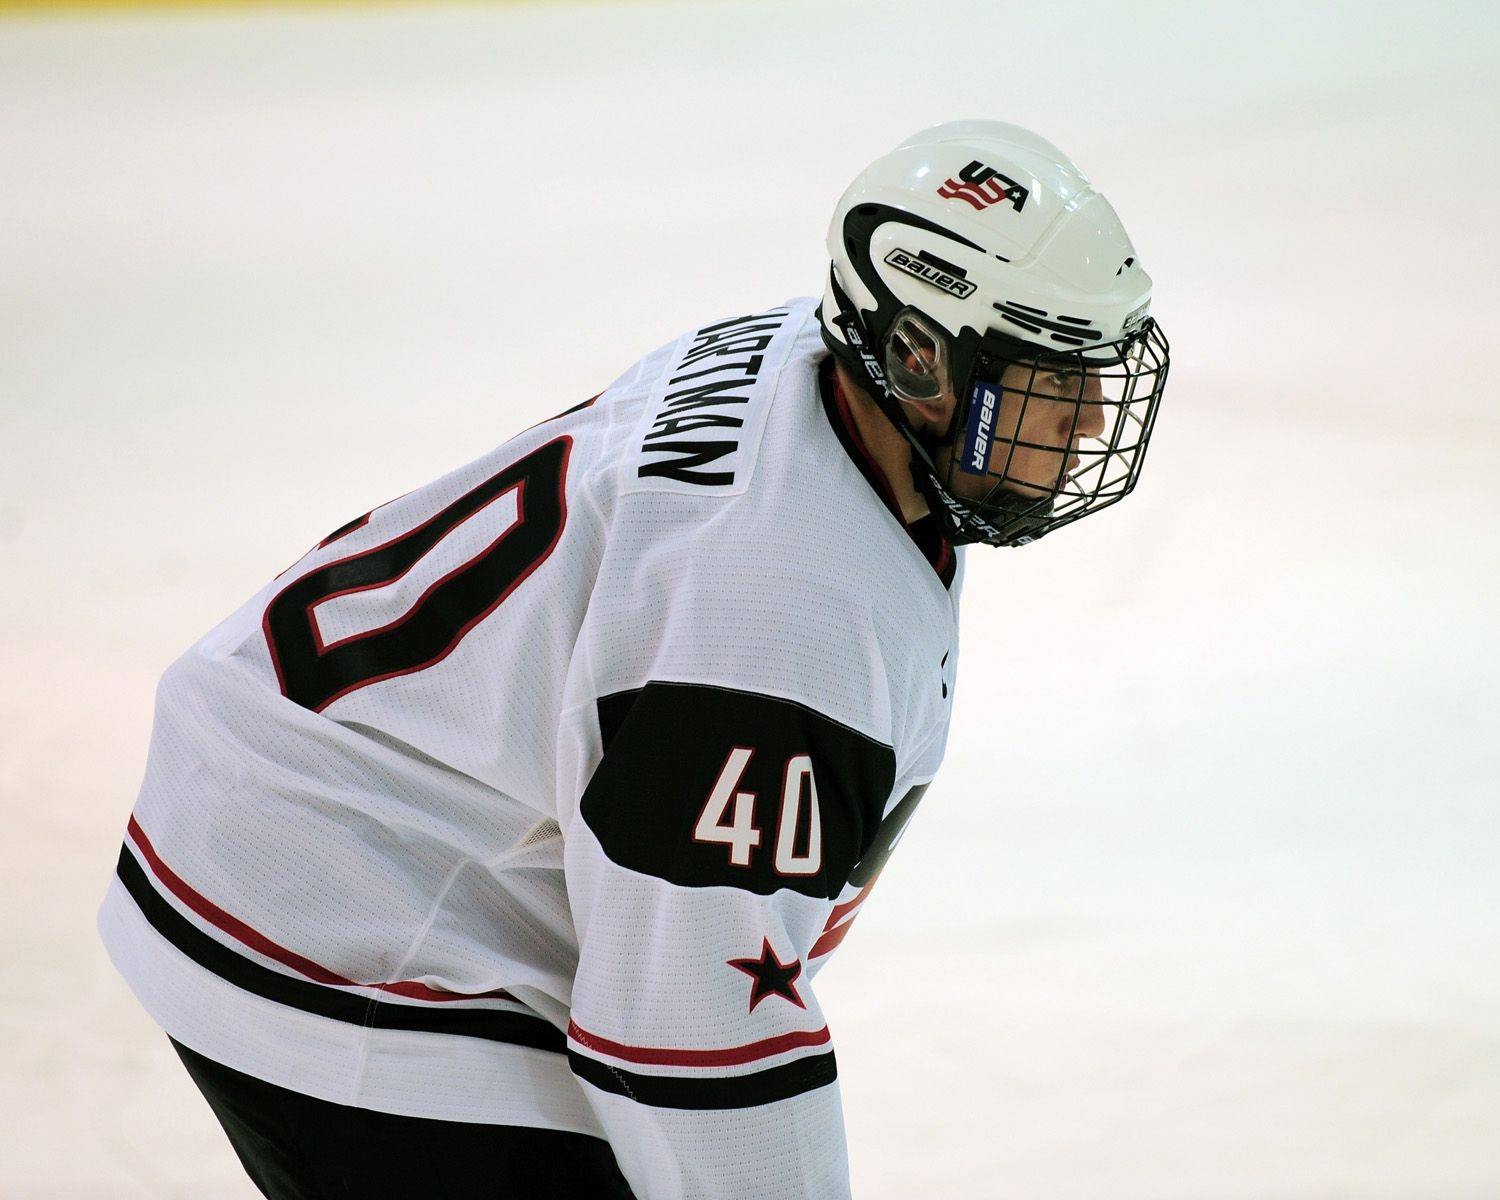 Ryan Hartman of West Dundee plays for USA Hockey's national team development program. He was the leading scorer for the U-17 team last season and this year will play for the U-18 team. Many of the program's players go on to NHL careers.